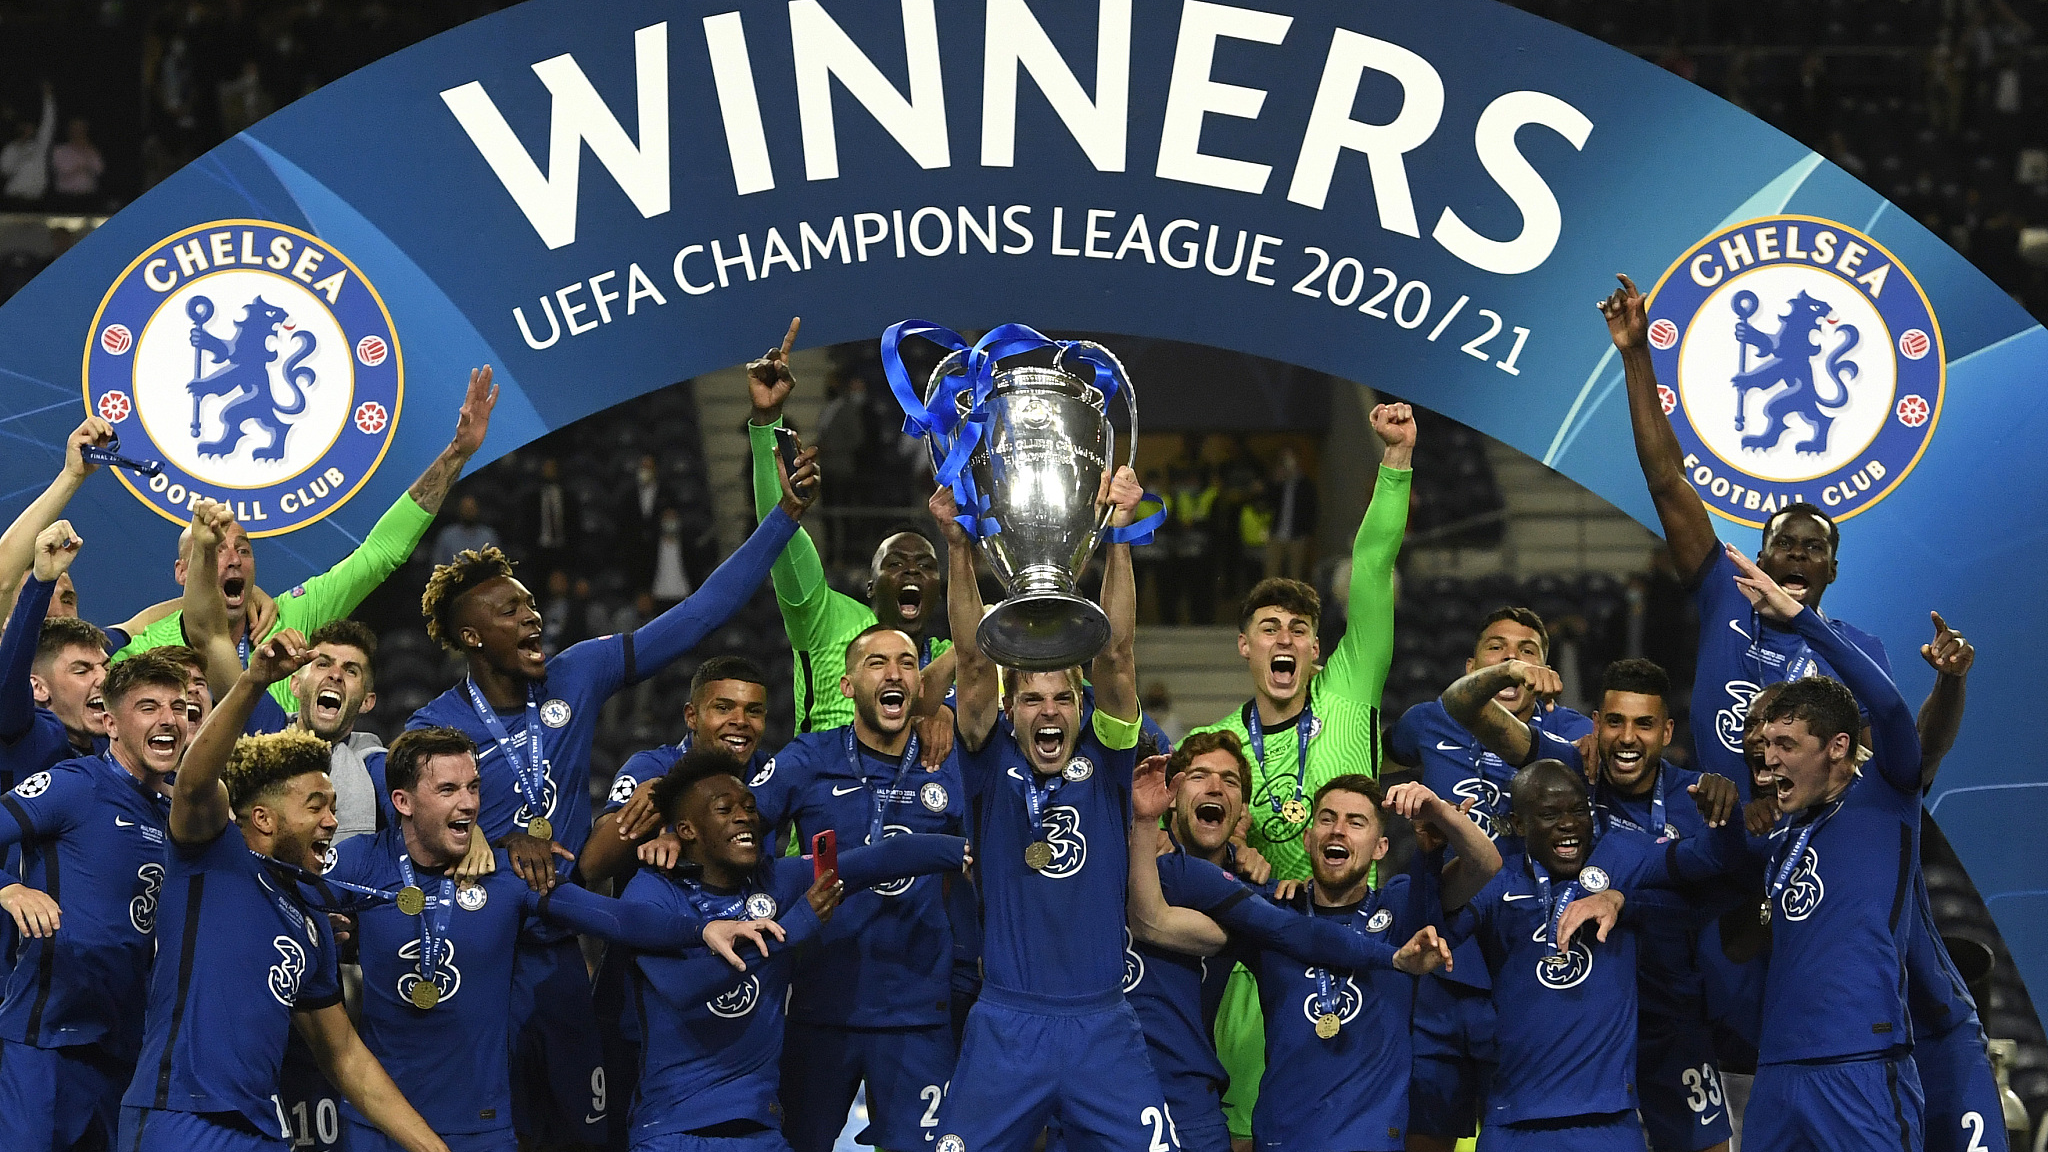 Chelsea beat Man City to win Champions League for 2nd time   CGTN 2048x1152